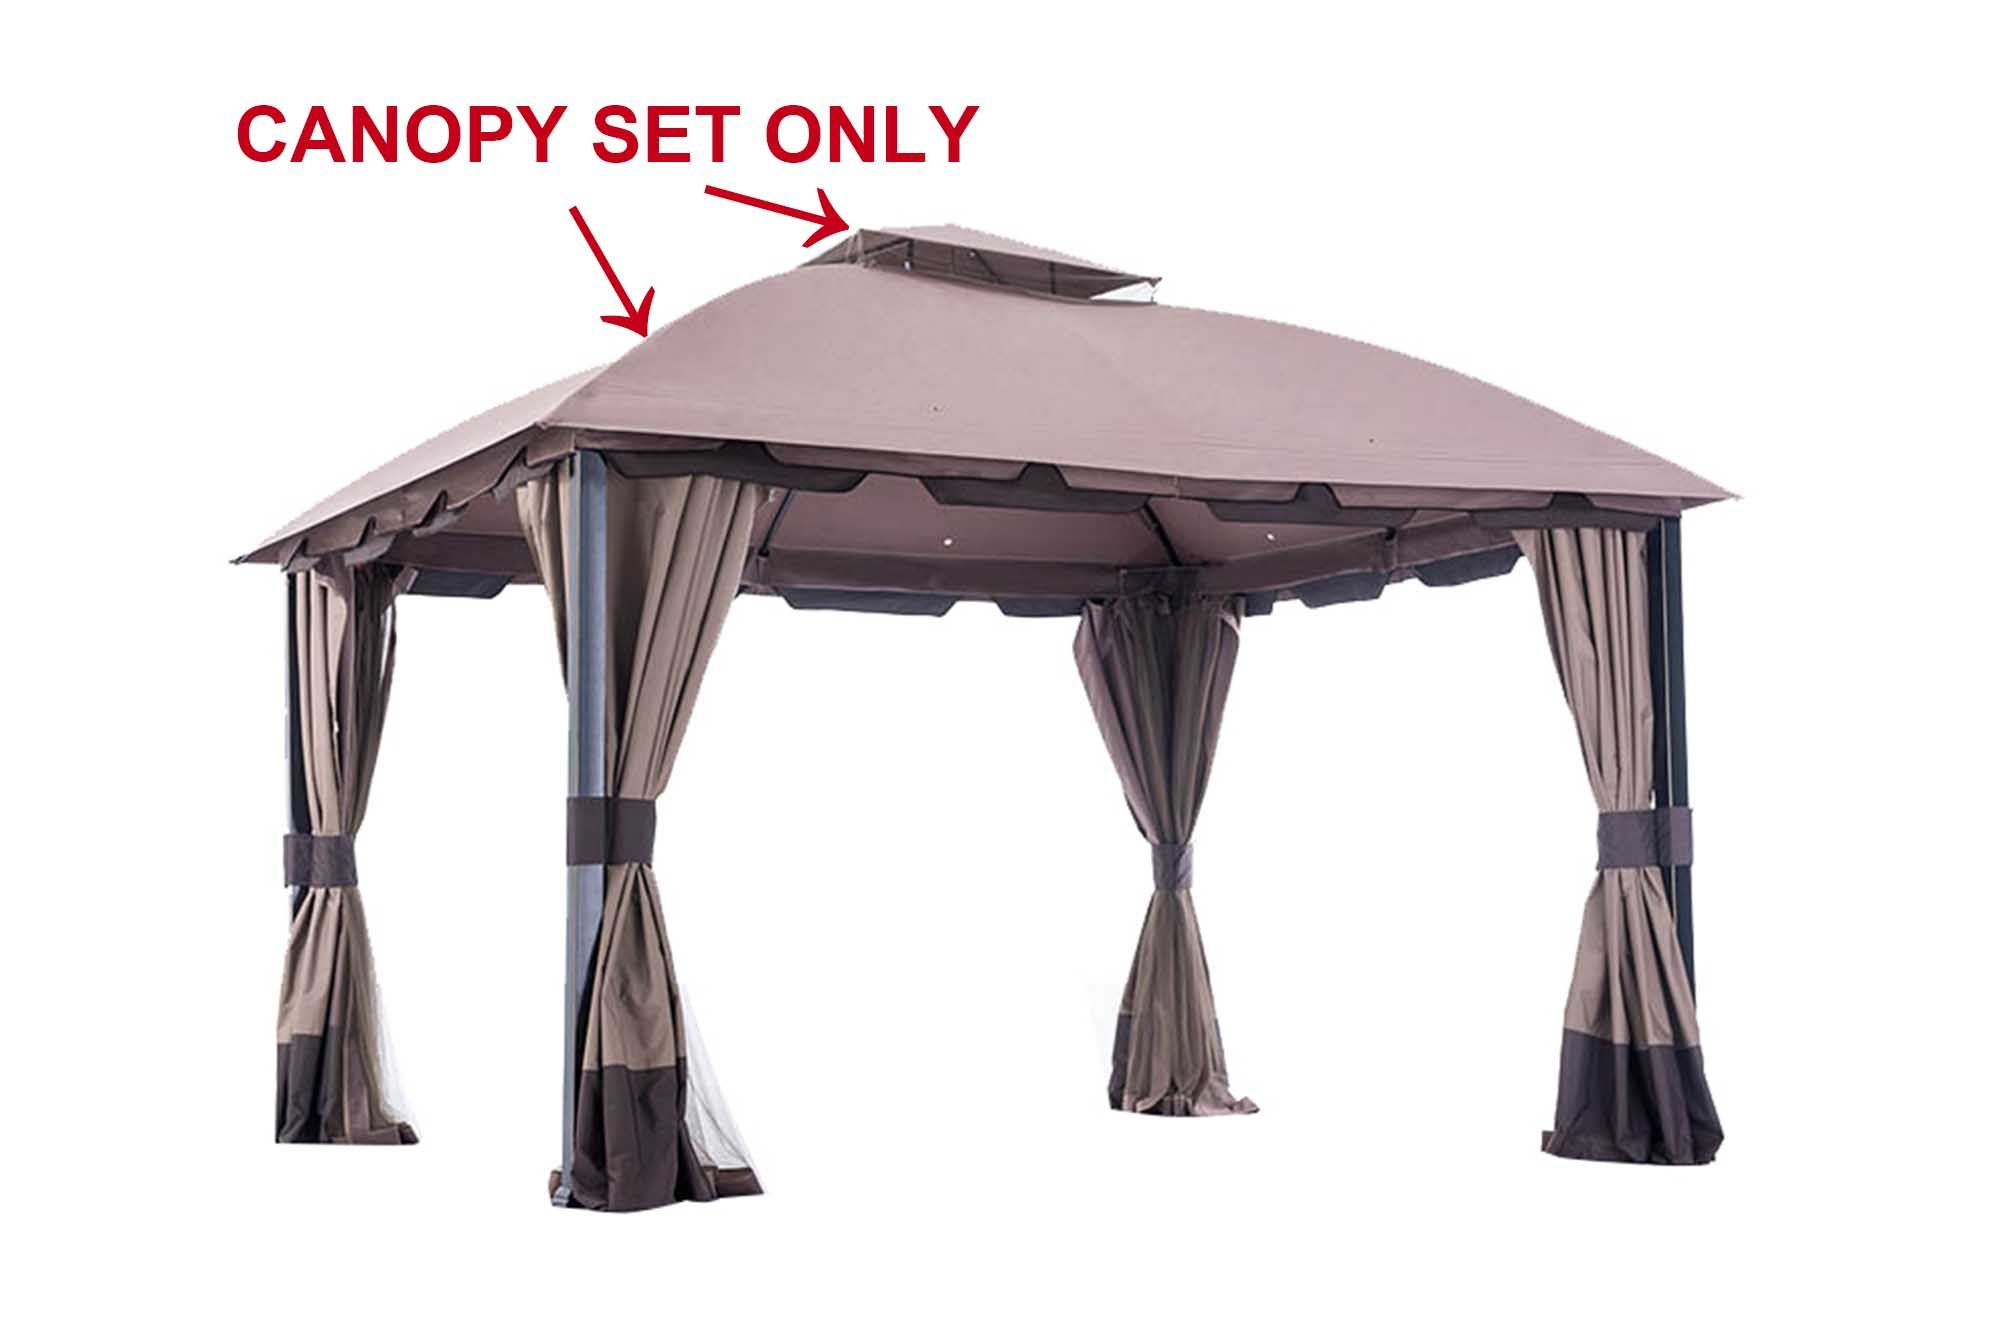 Sunjoy 110109123 Universal to L-GZ659PST-WV-BigLots Replacement Canopy Set